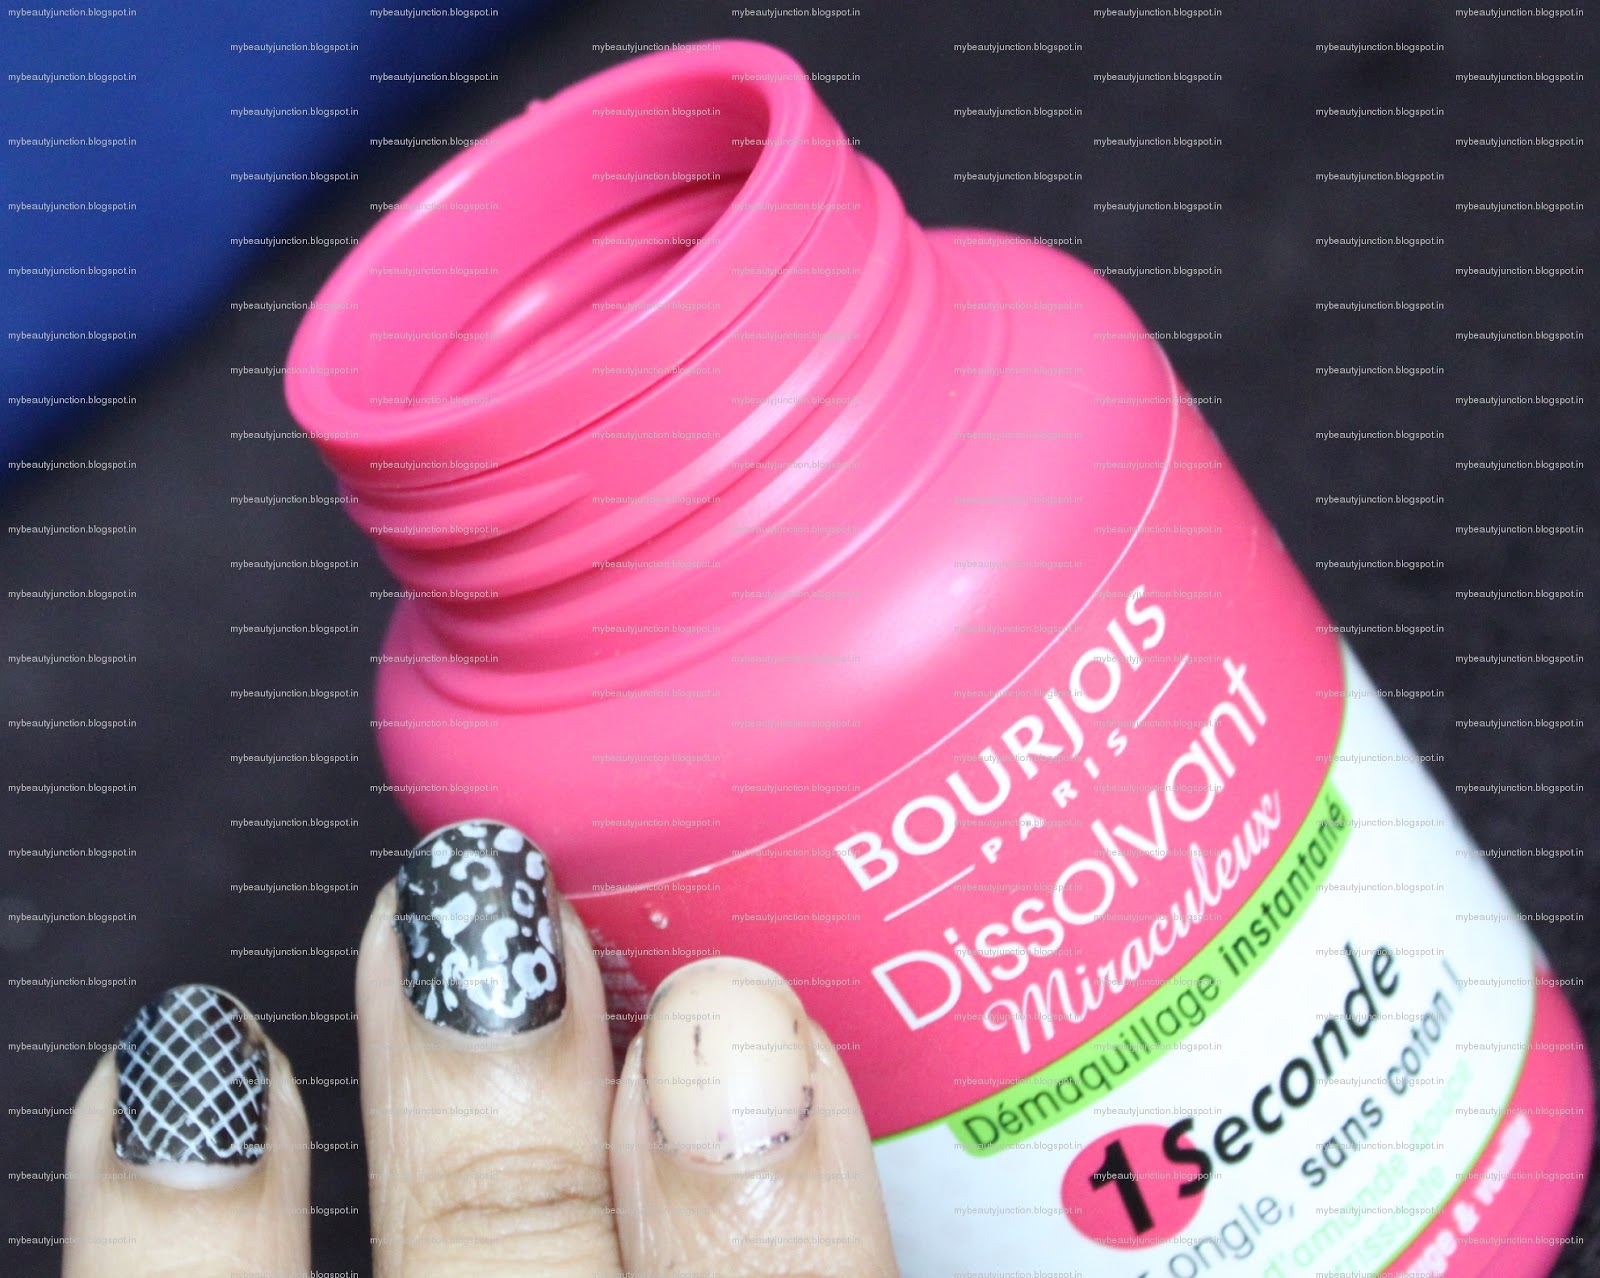 Bourjois One Second Magic Nail Polish Remover review